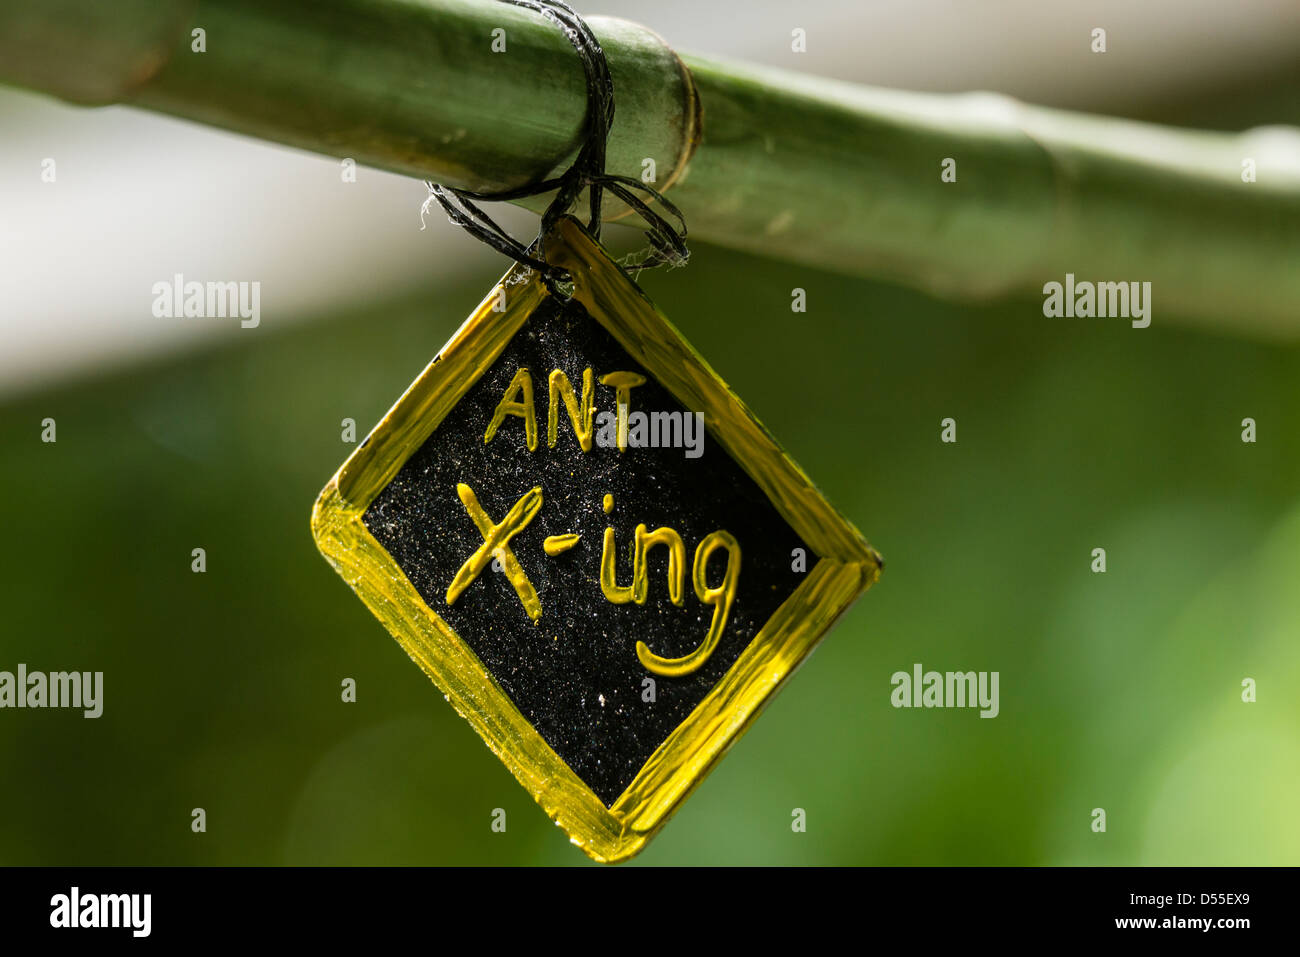 Ant crossing sign at the Jardin de Mariposas, Monteverde Butterfly Gardens, Monteverde, Costa Rica. - Stock Image